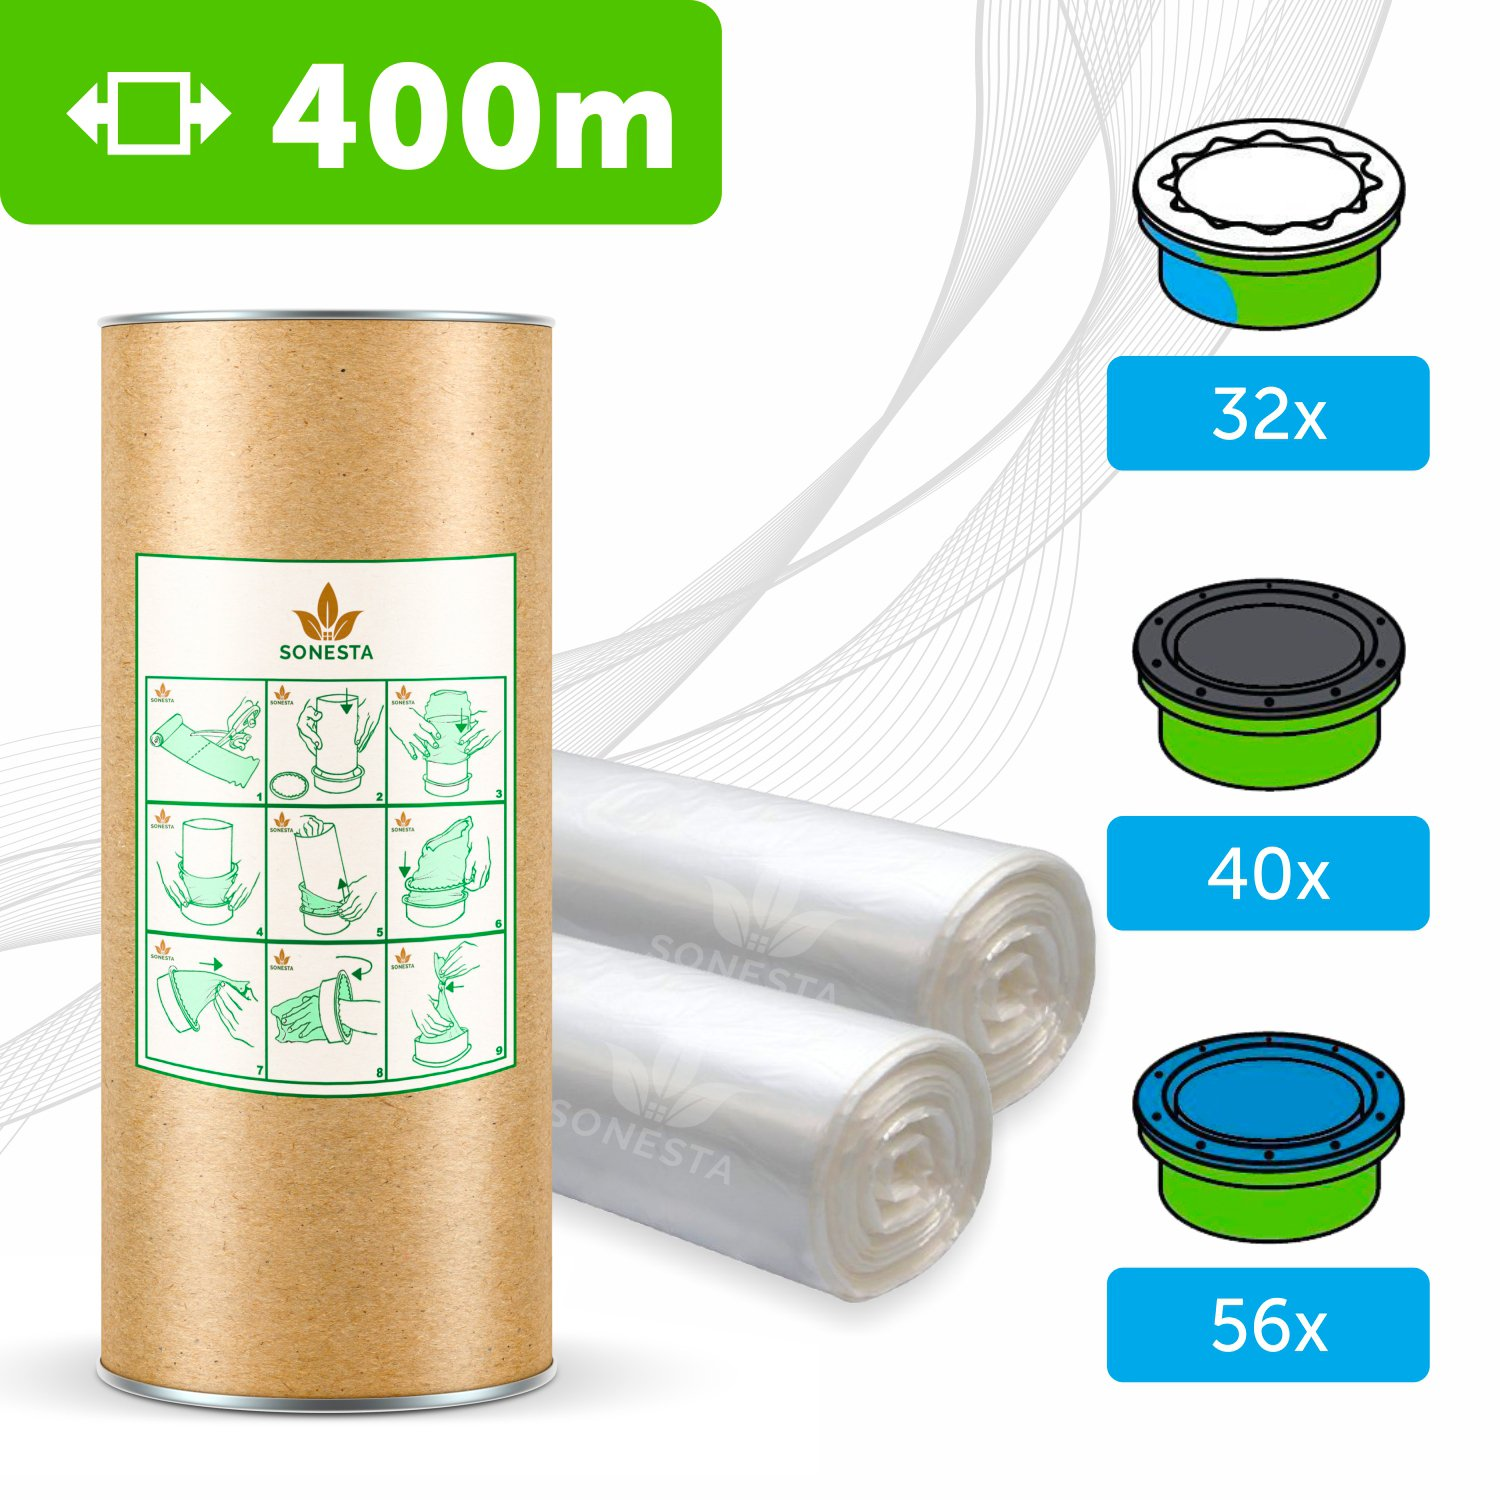 400m - ECO FRIENDLY liner compatible with Tommee Tippee Sangenic | Angelcare | Litter Locker II | Equivalent to 32 Sangenic fits all tubs + cardboard roll for easy refilling and storage SONESTA